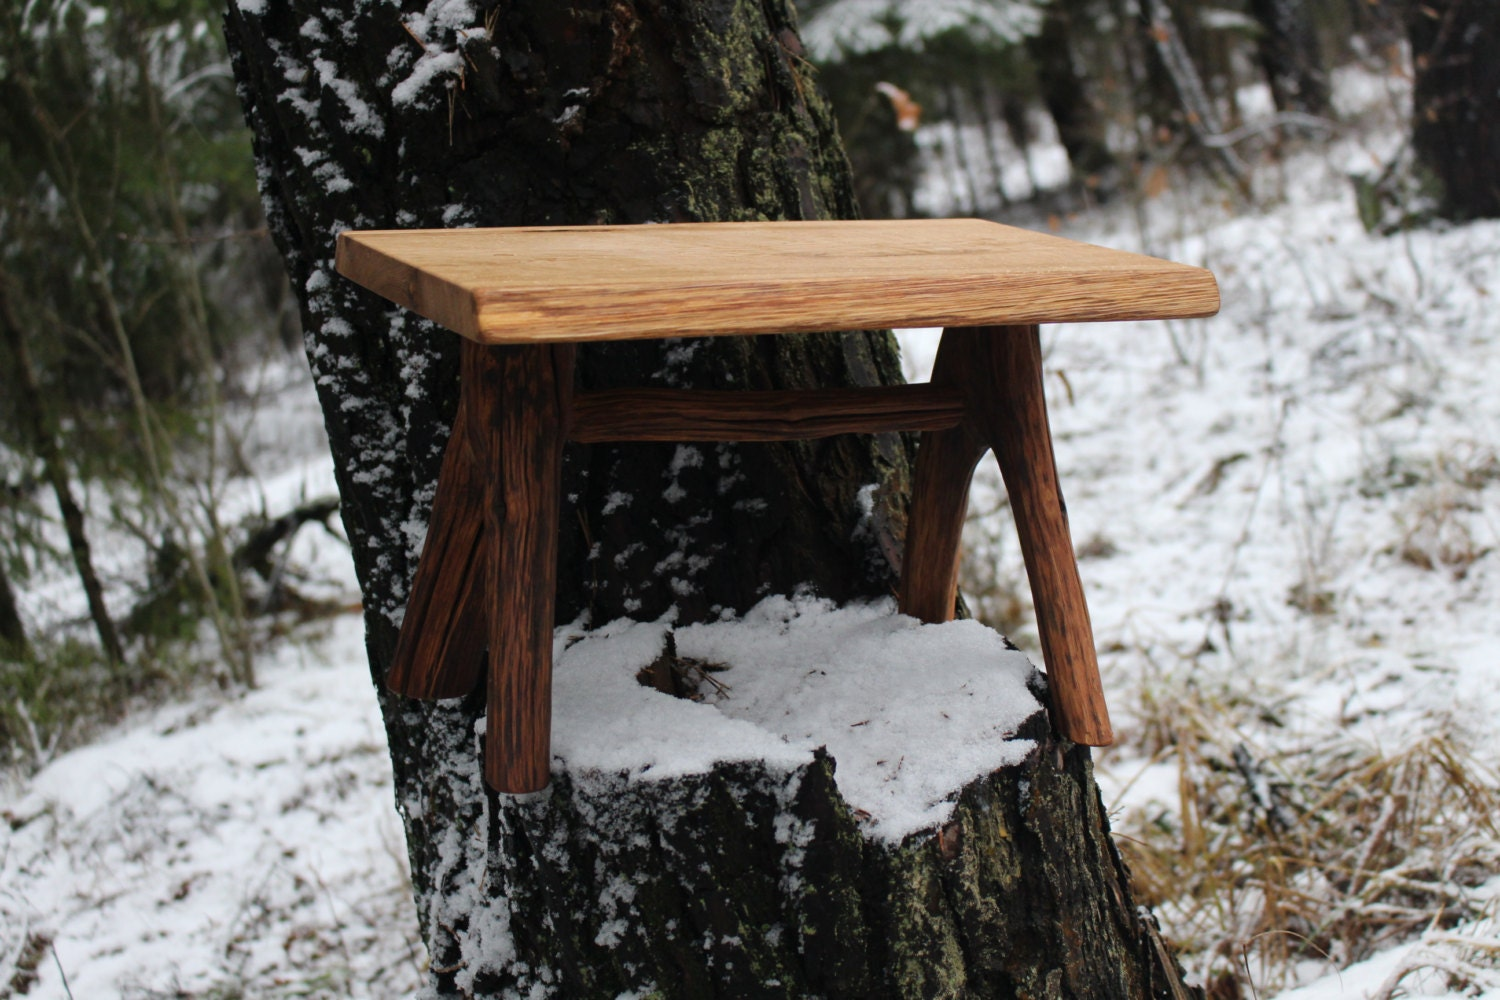 Rustic Step Stool Bathroom Stool Wooden Small Stool By Woodber